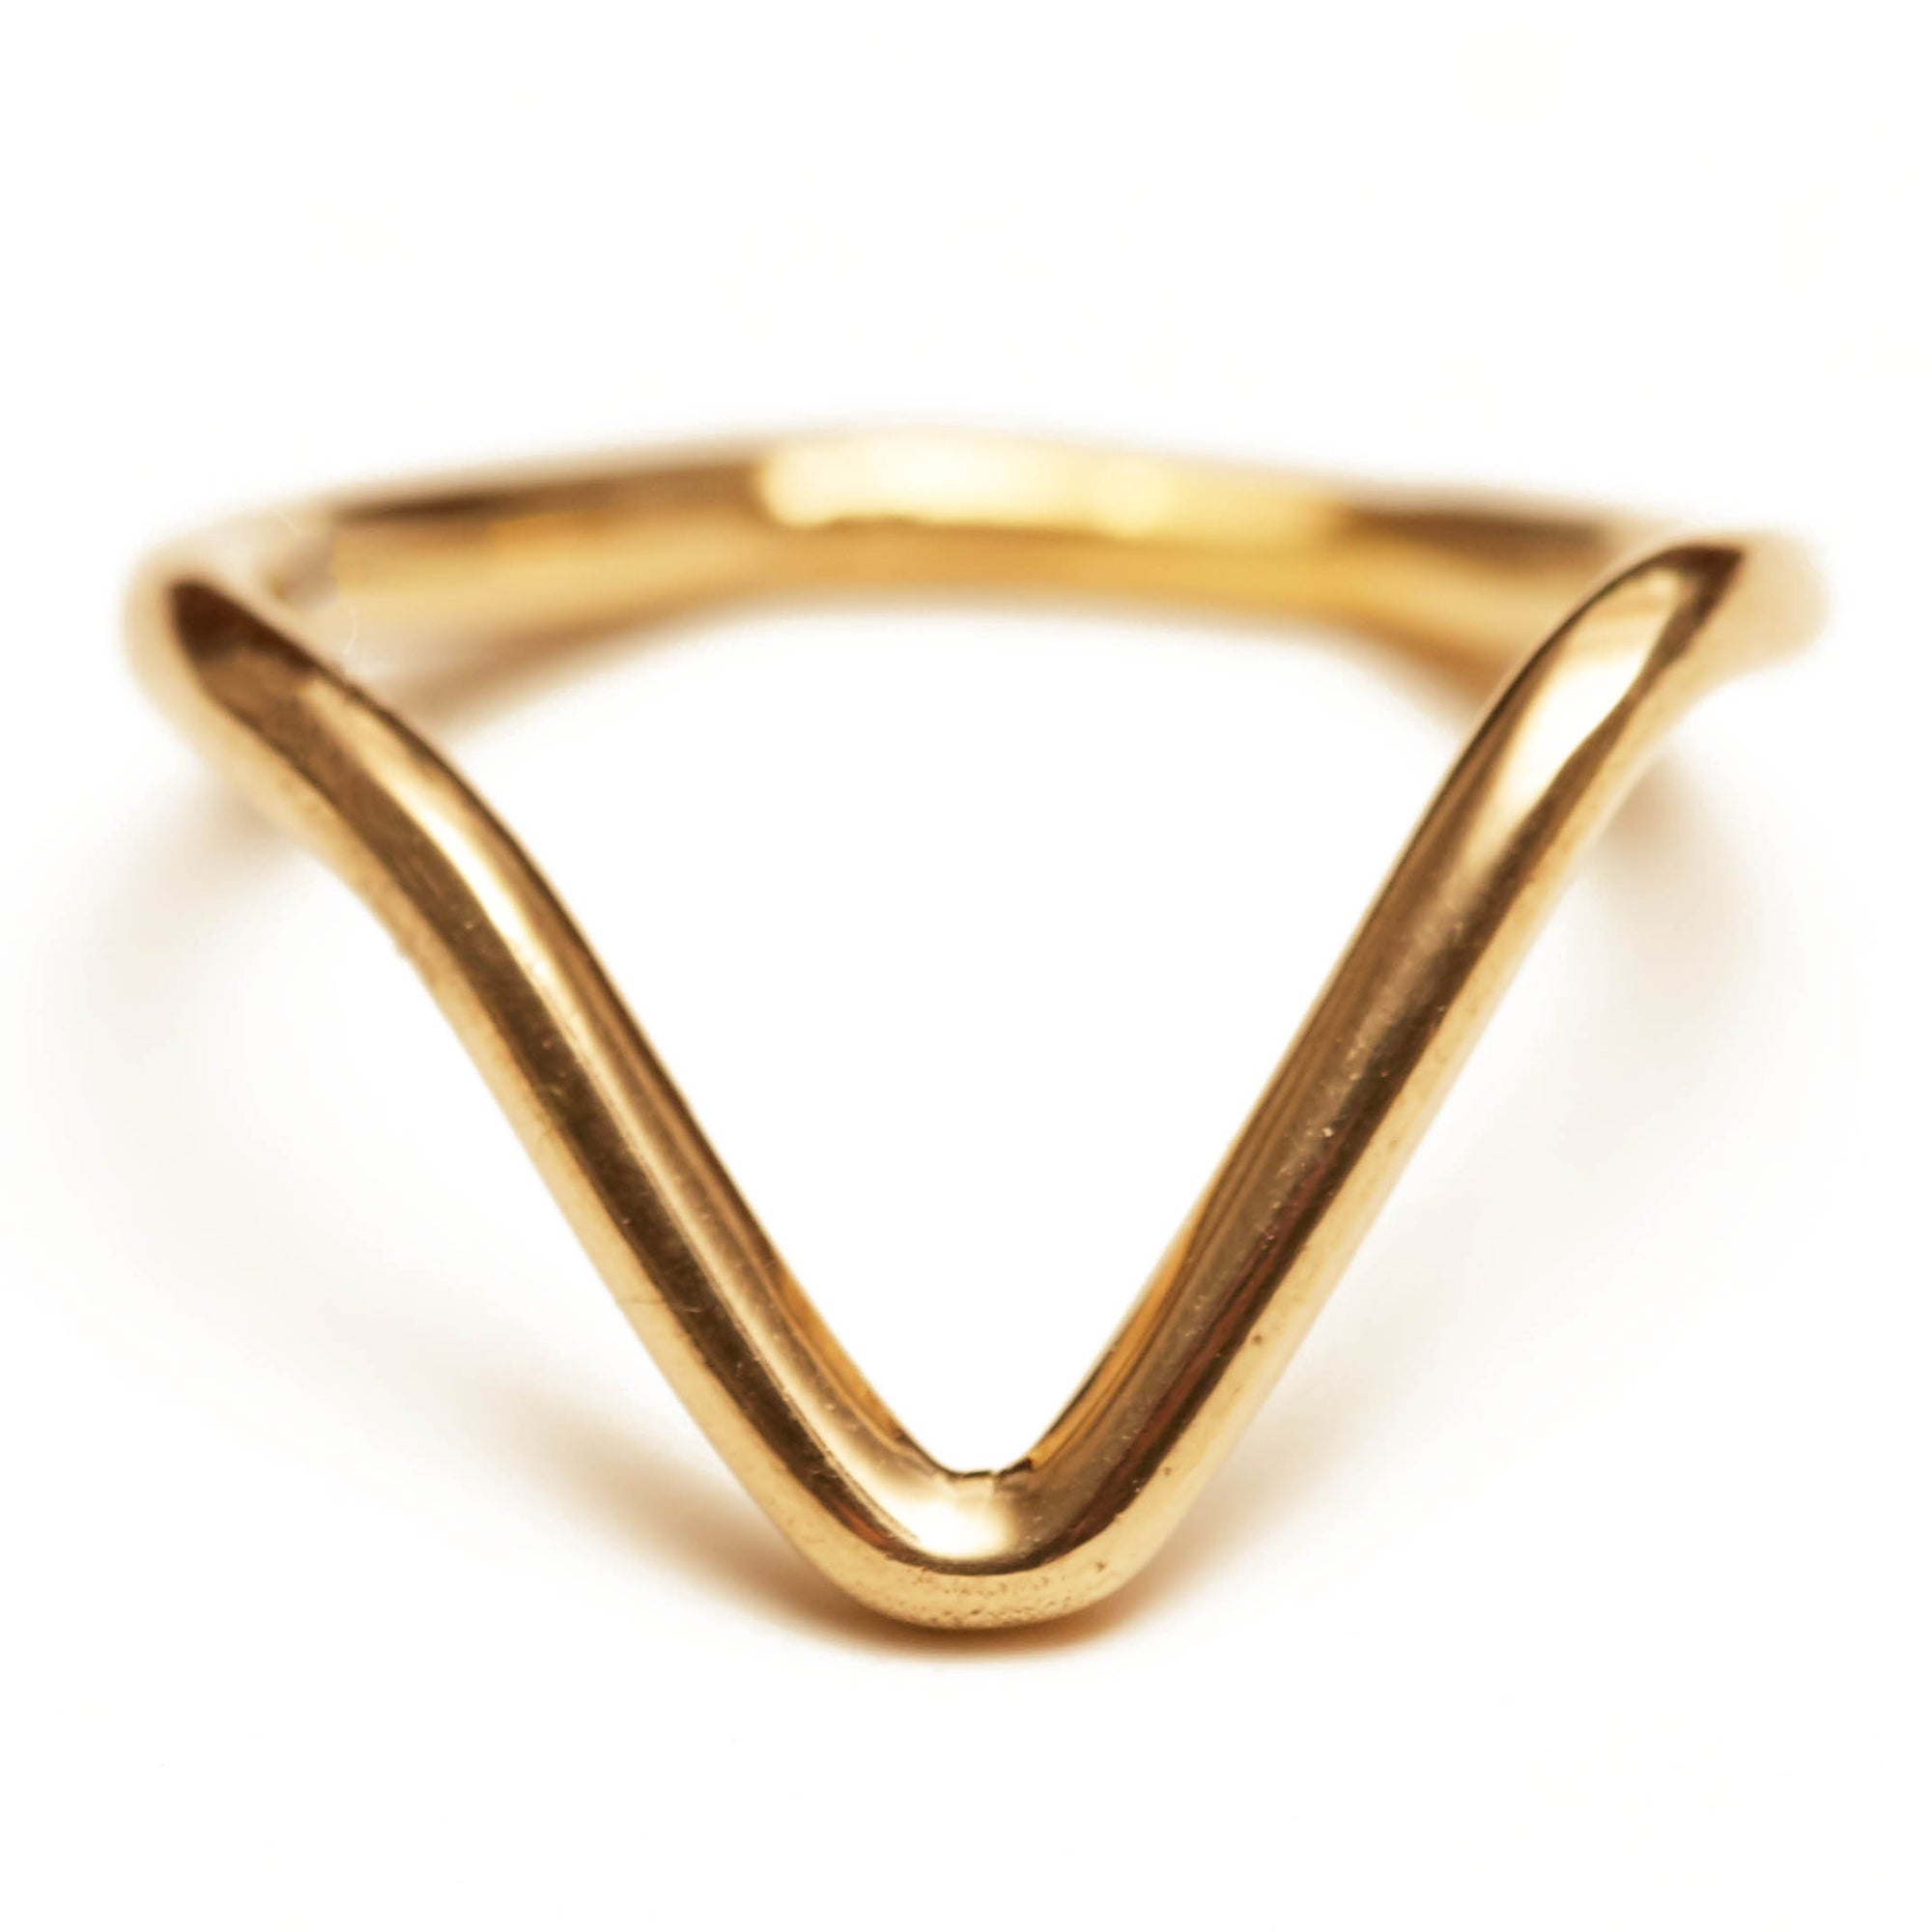 V-Ring - Gold, Sterling Silver